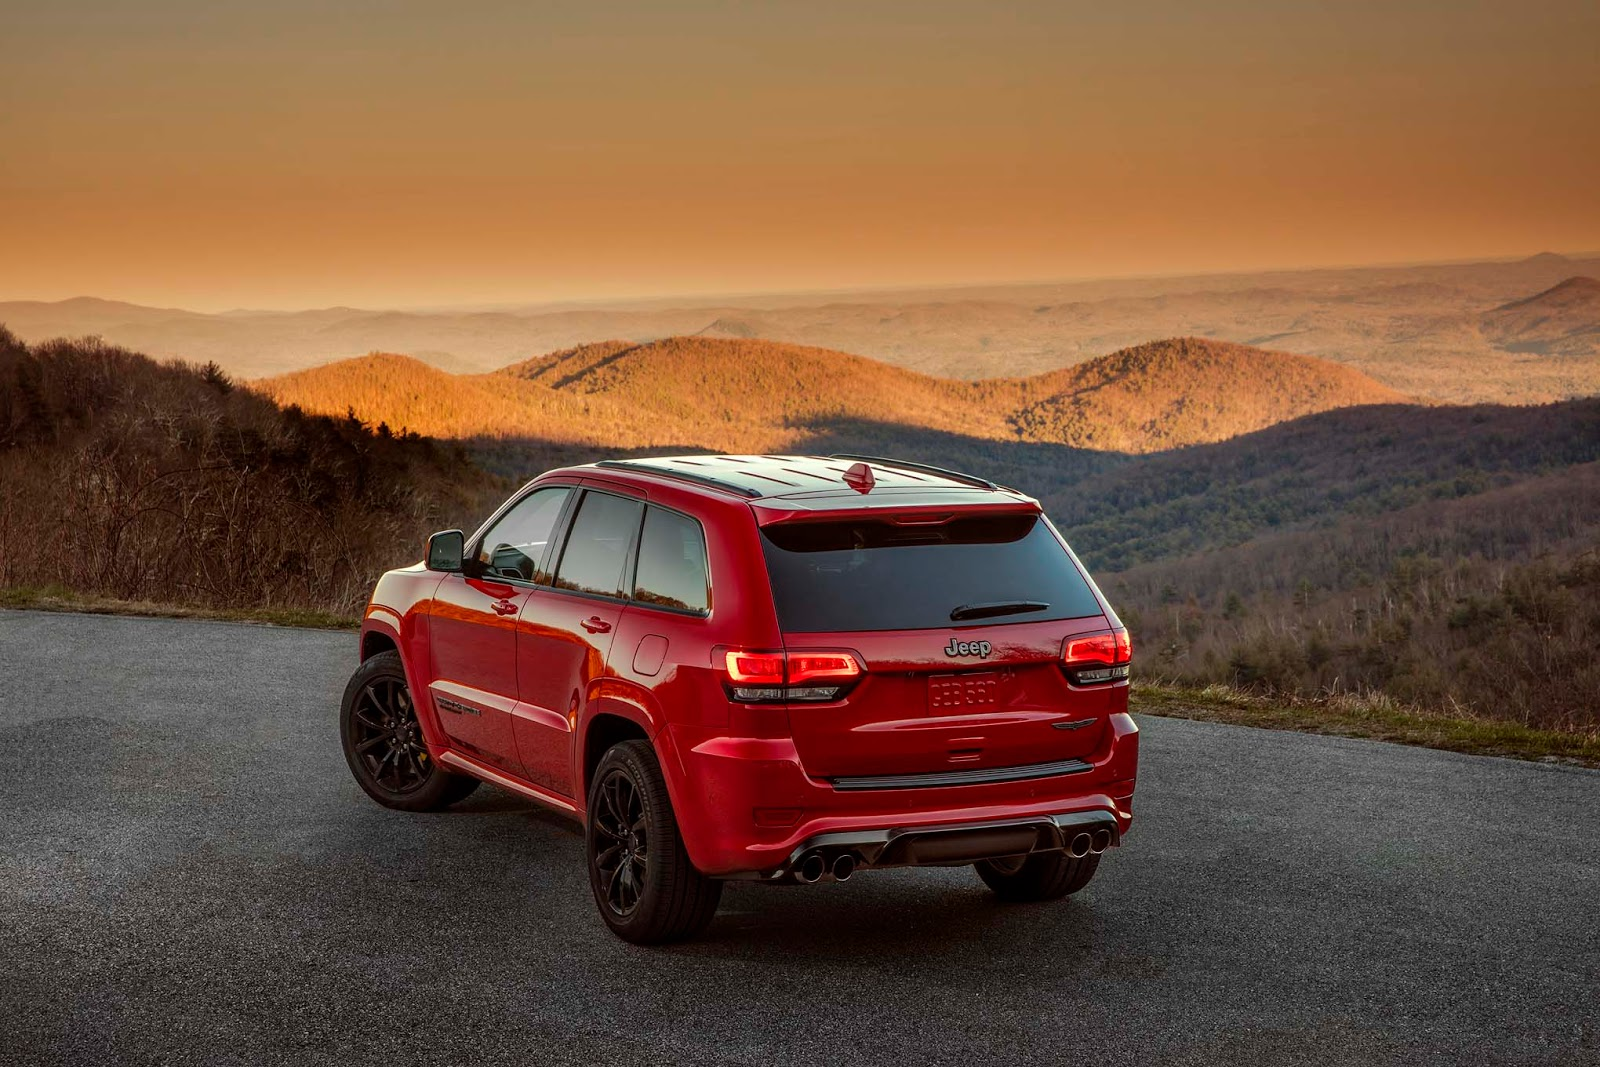 Jeep Gifts The 2018 Grand Cherokee Trackhawk With 707 HP ...